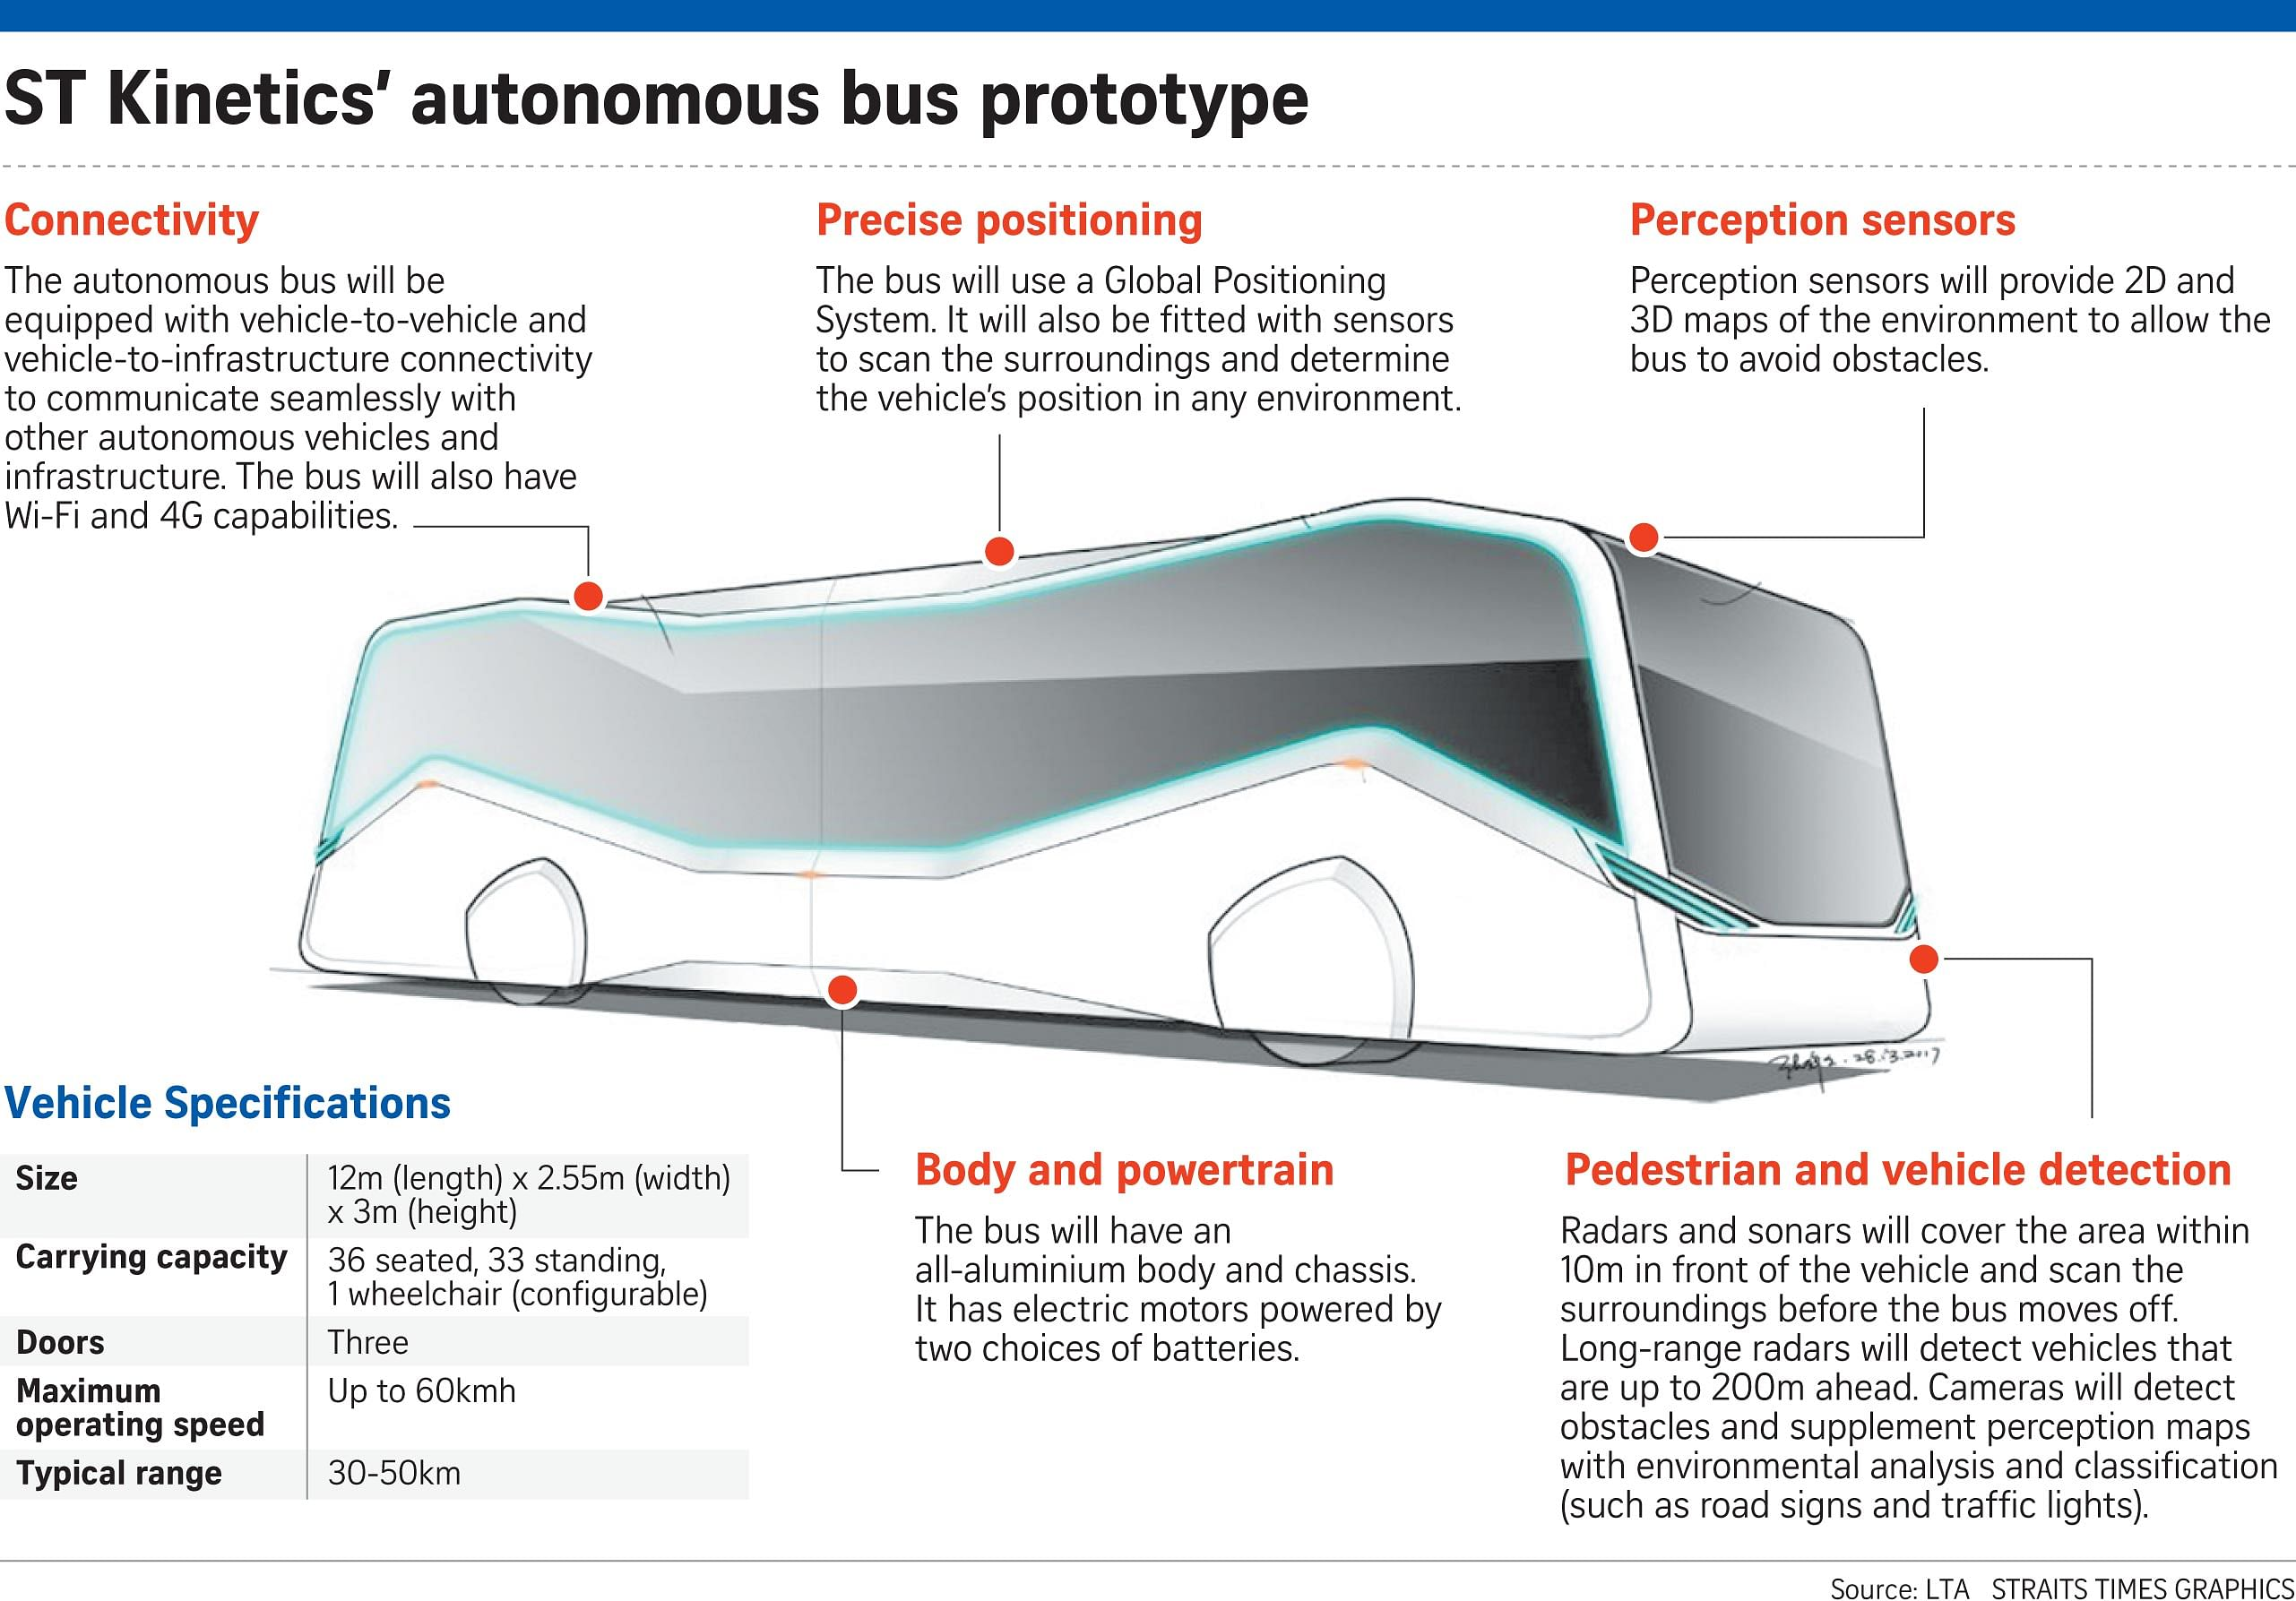 Commuters Can Catch A Driverless Public Bus By 2020